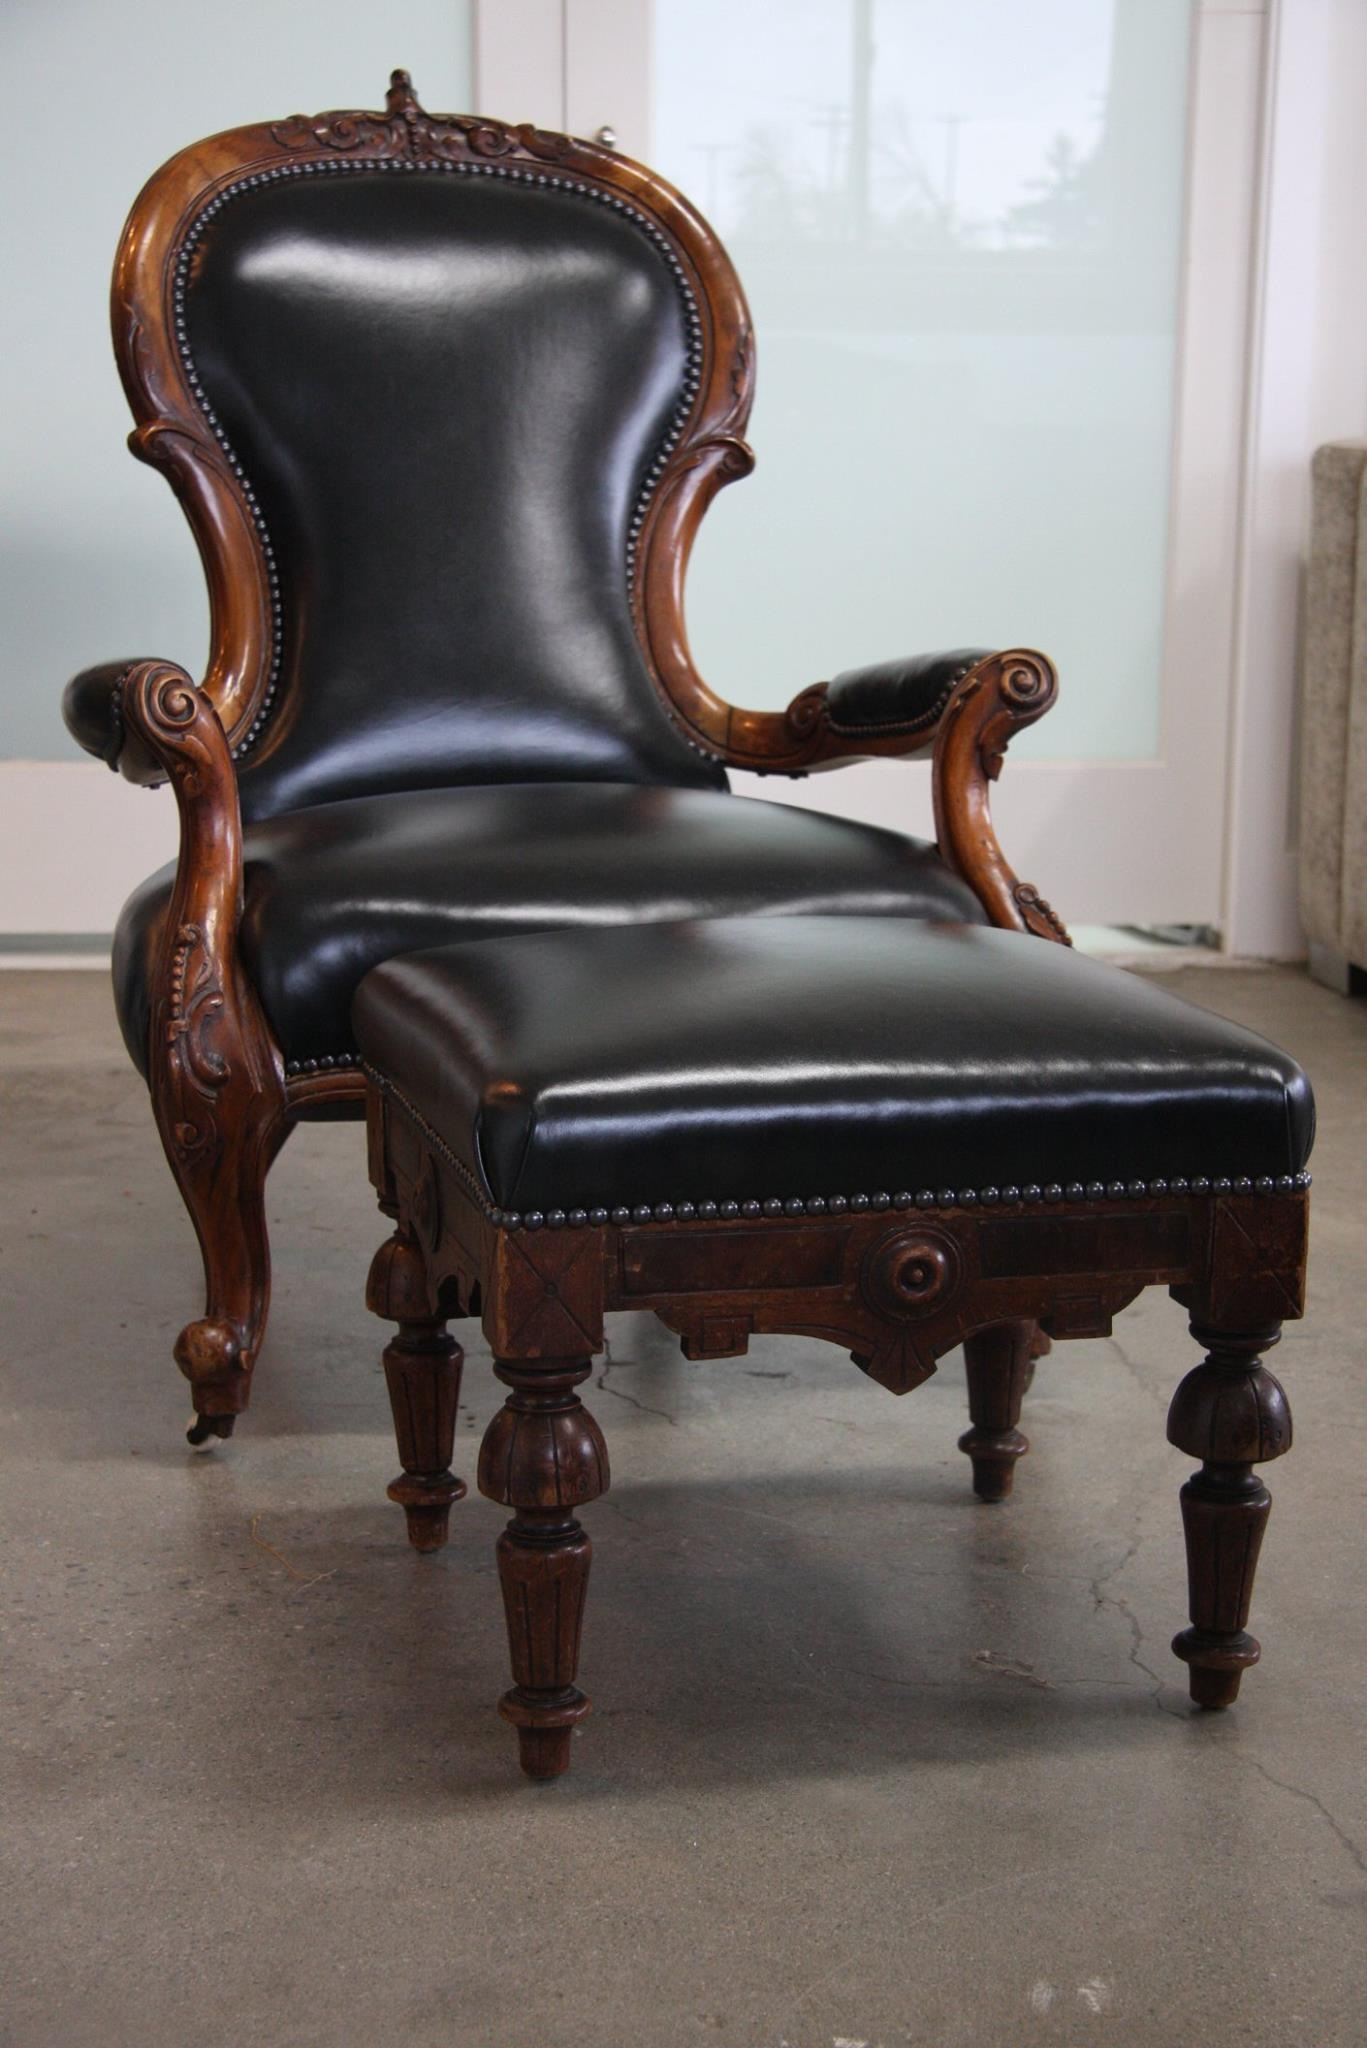 Newly upholstered Gentleman's Chair in bi-cast leather with stud trim.